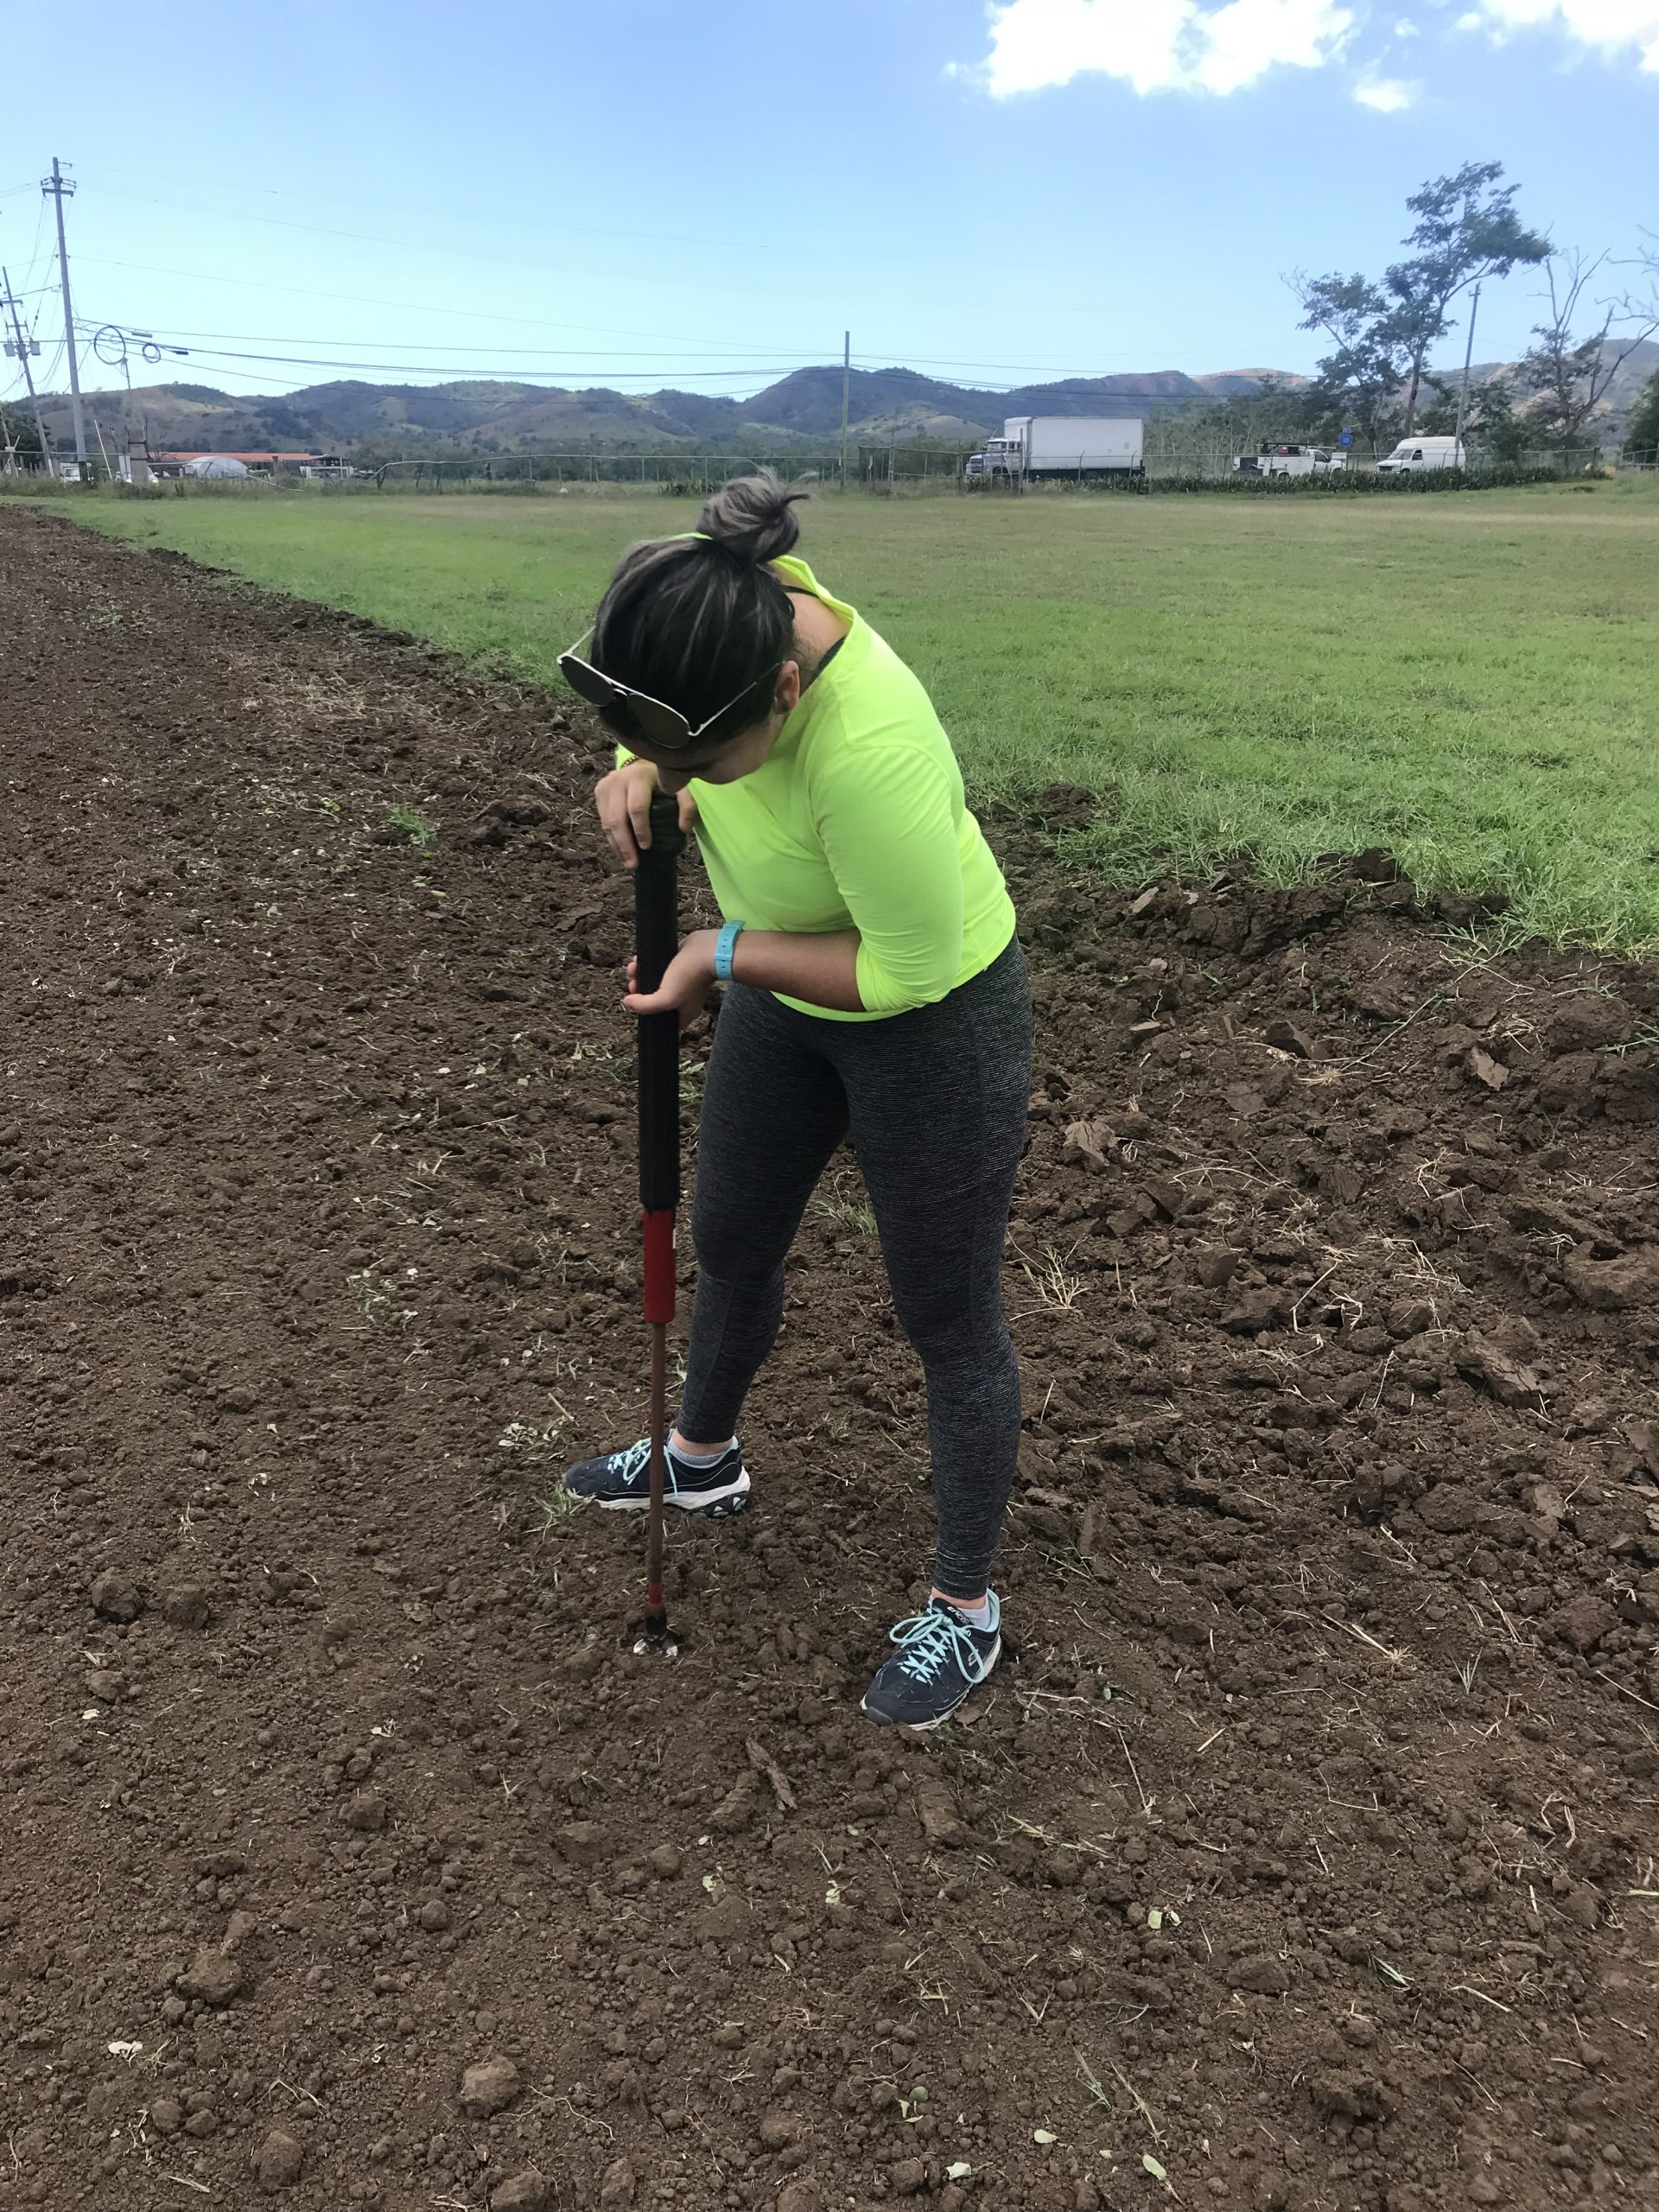 Woman in a yellow shirt digs in the soil